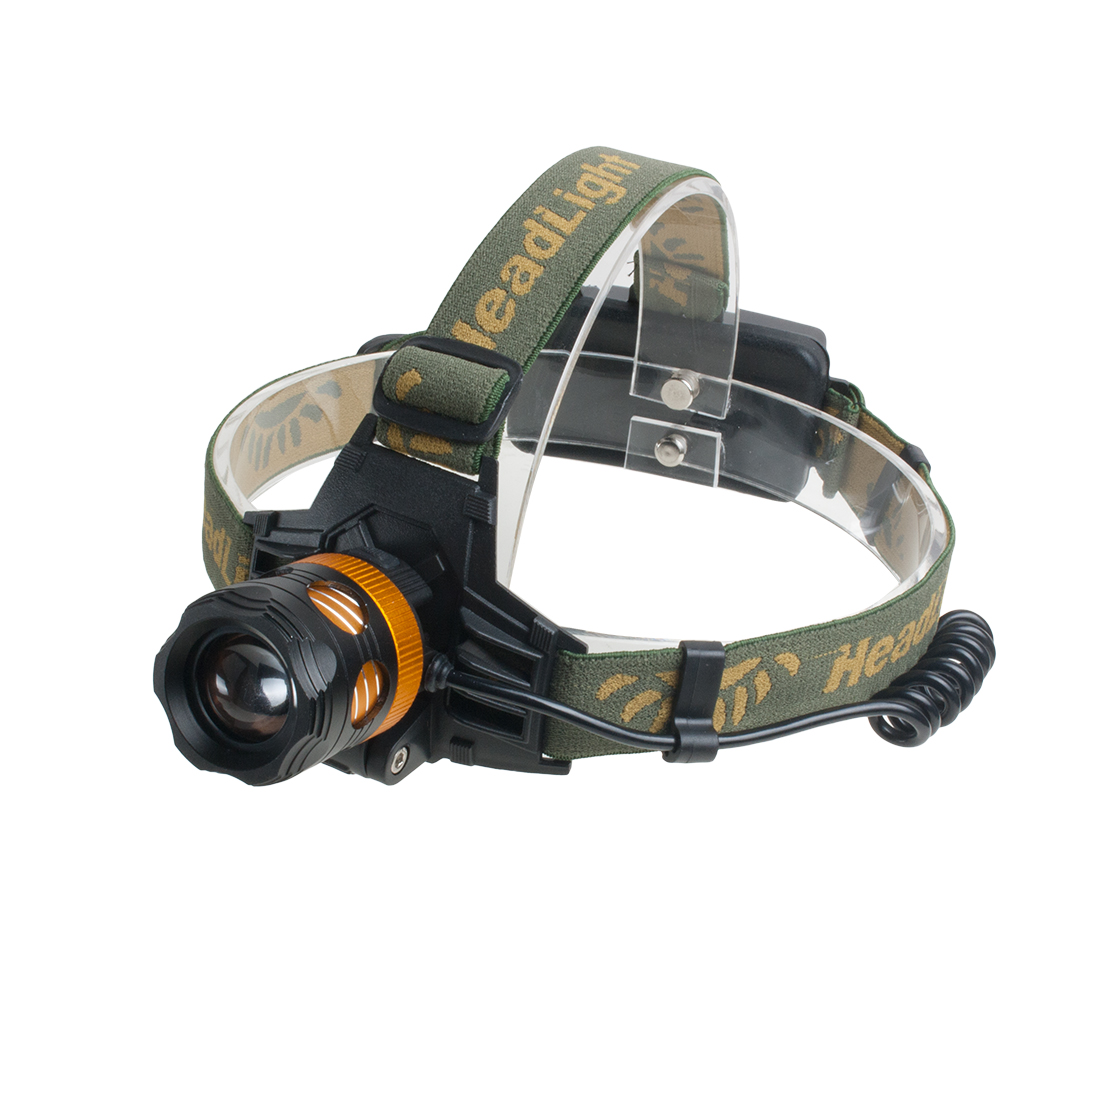 Battery Powered LED Headlamp Zoomable Head Light Biking Camping Dual Lighting Source lamp